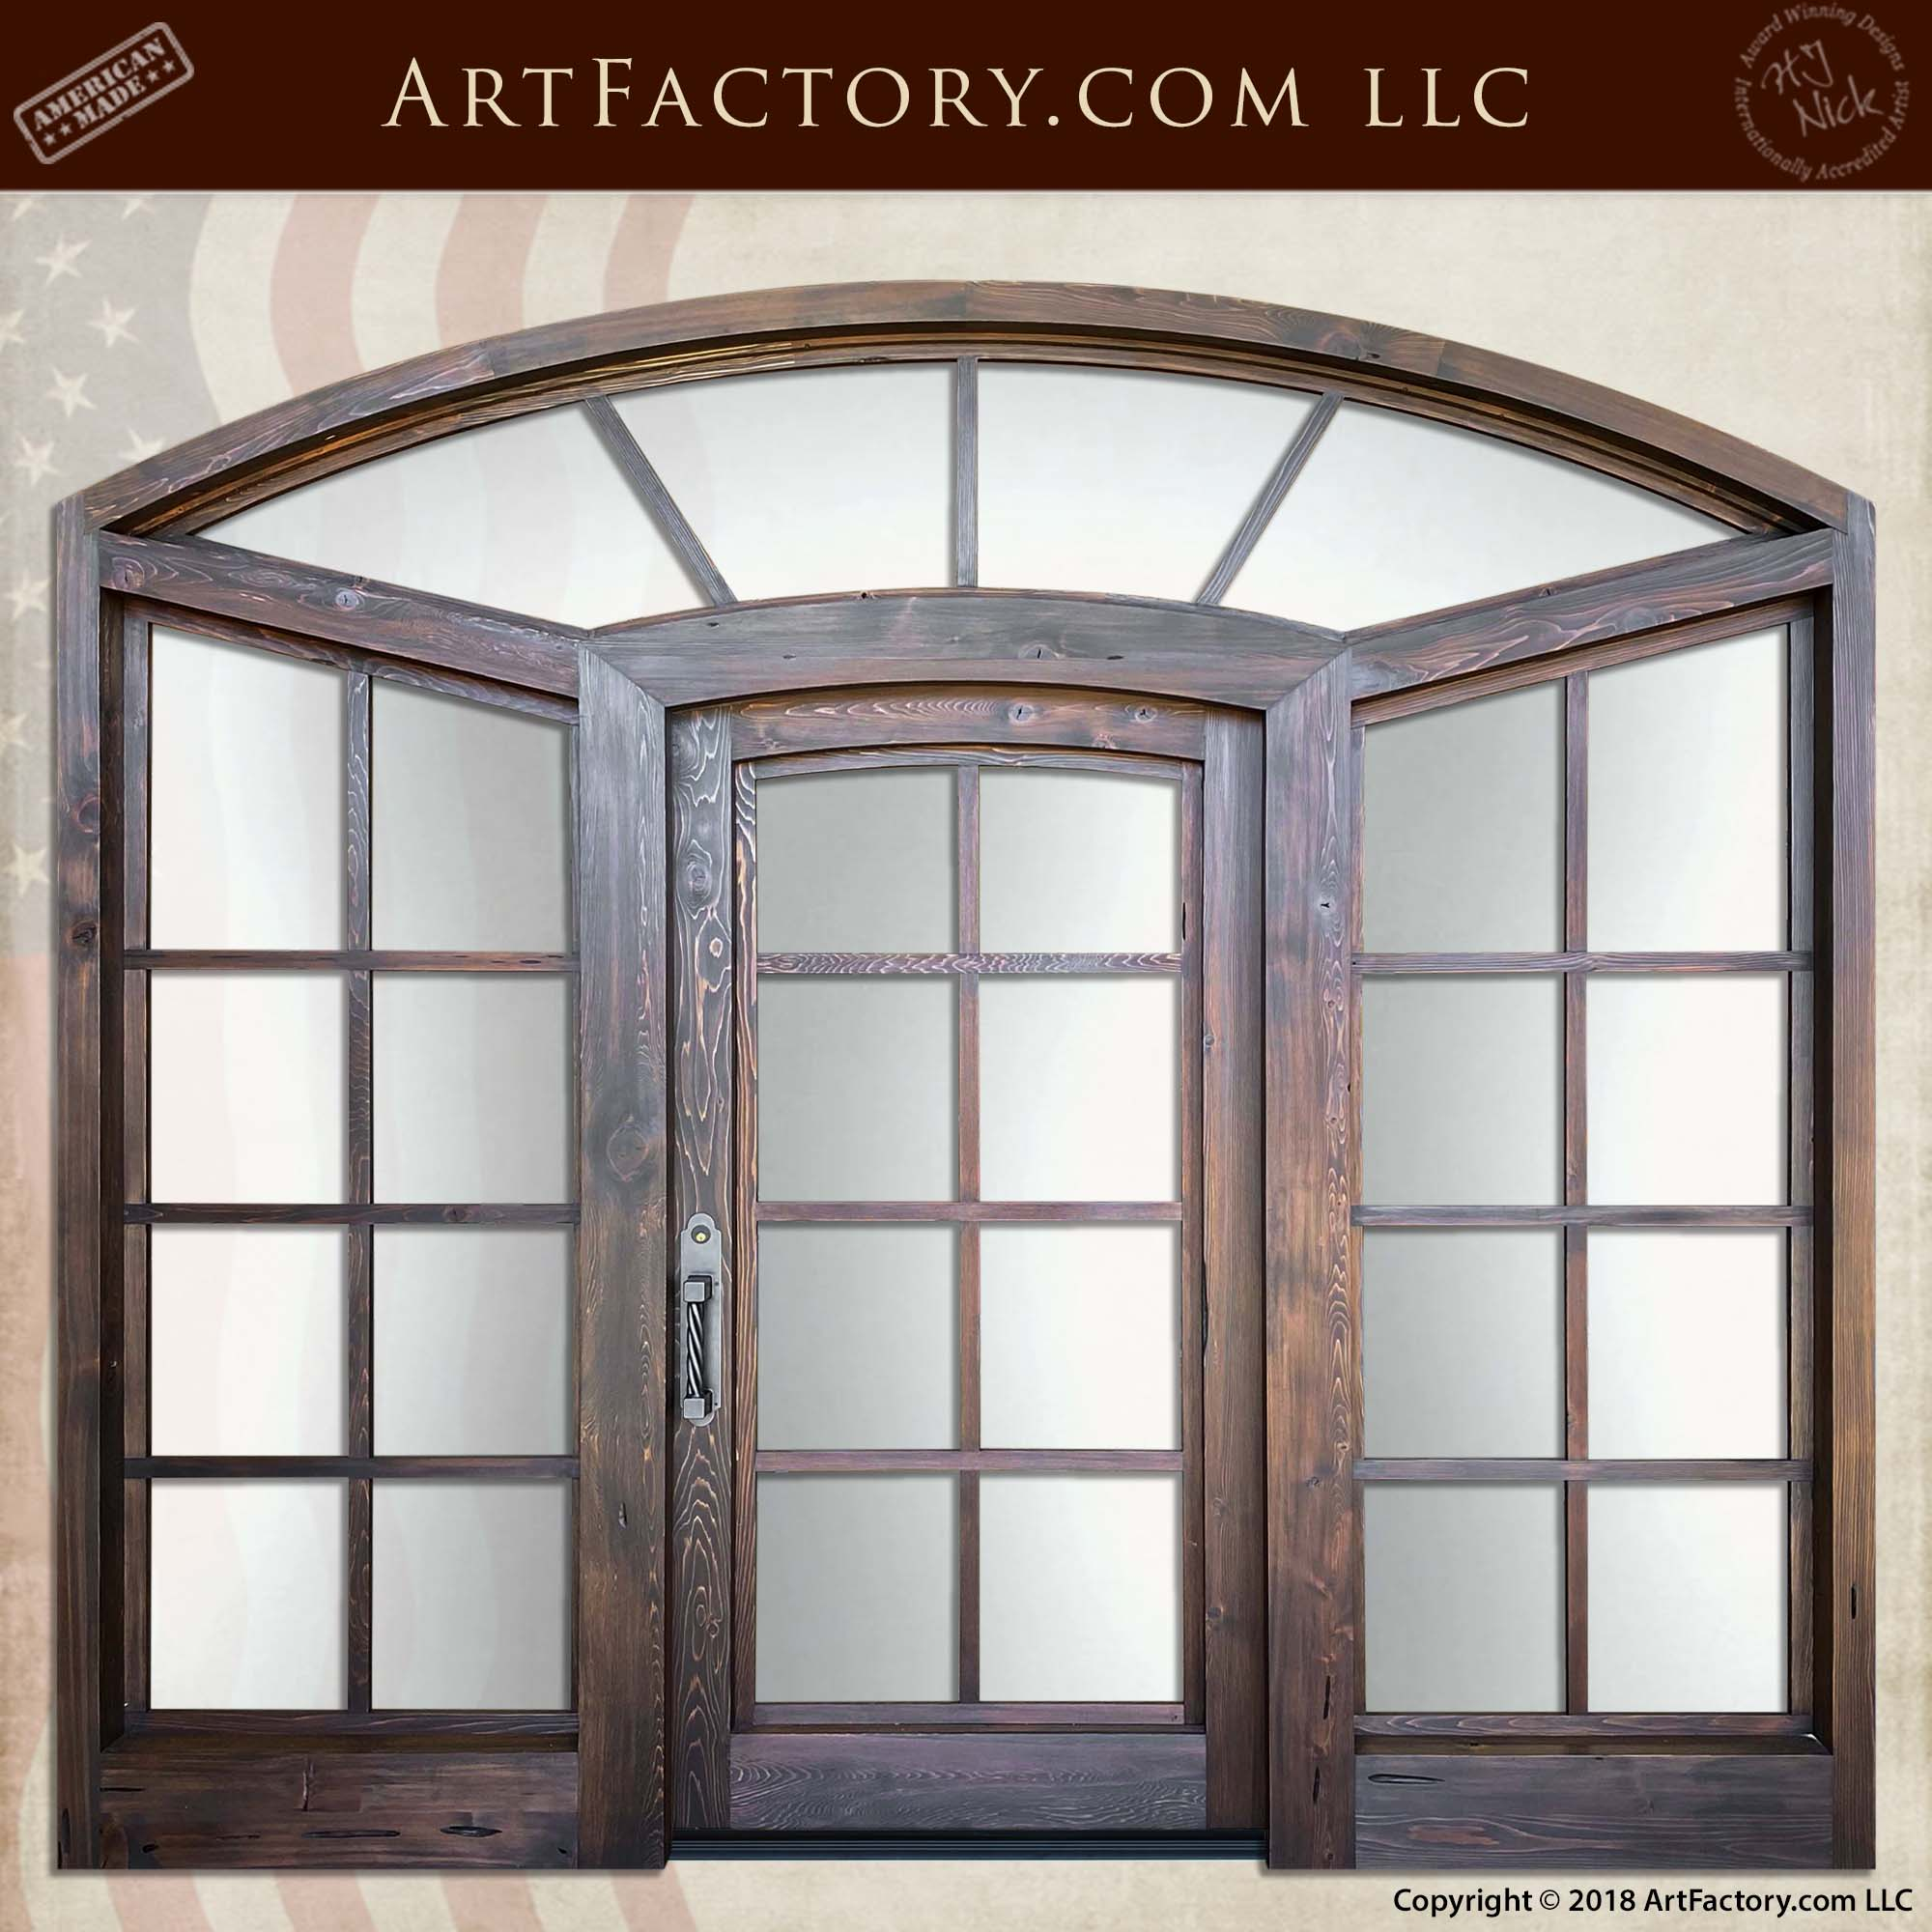 Divided Light Door with Sidelights and Transom